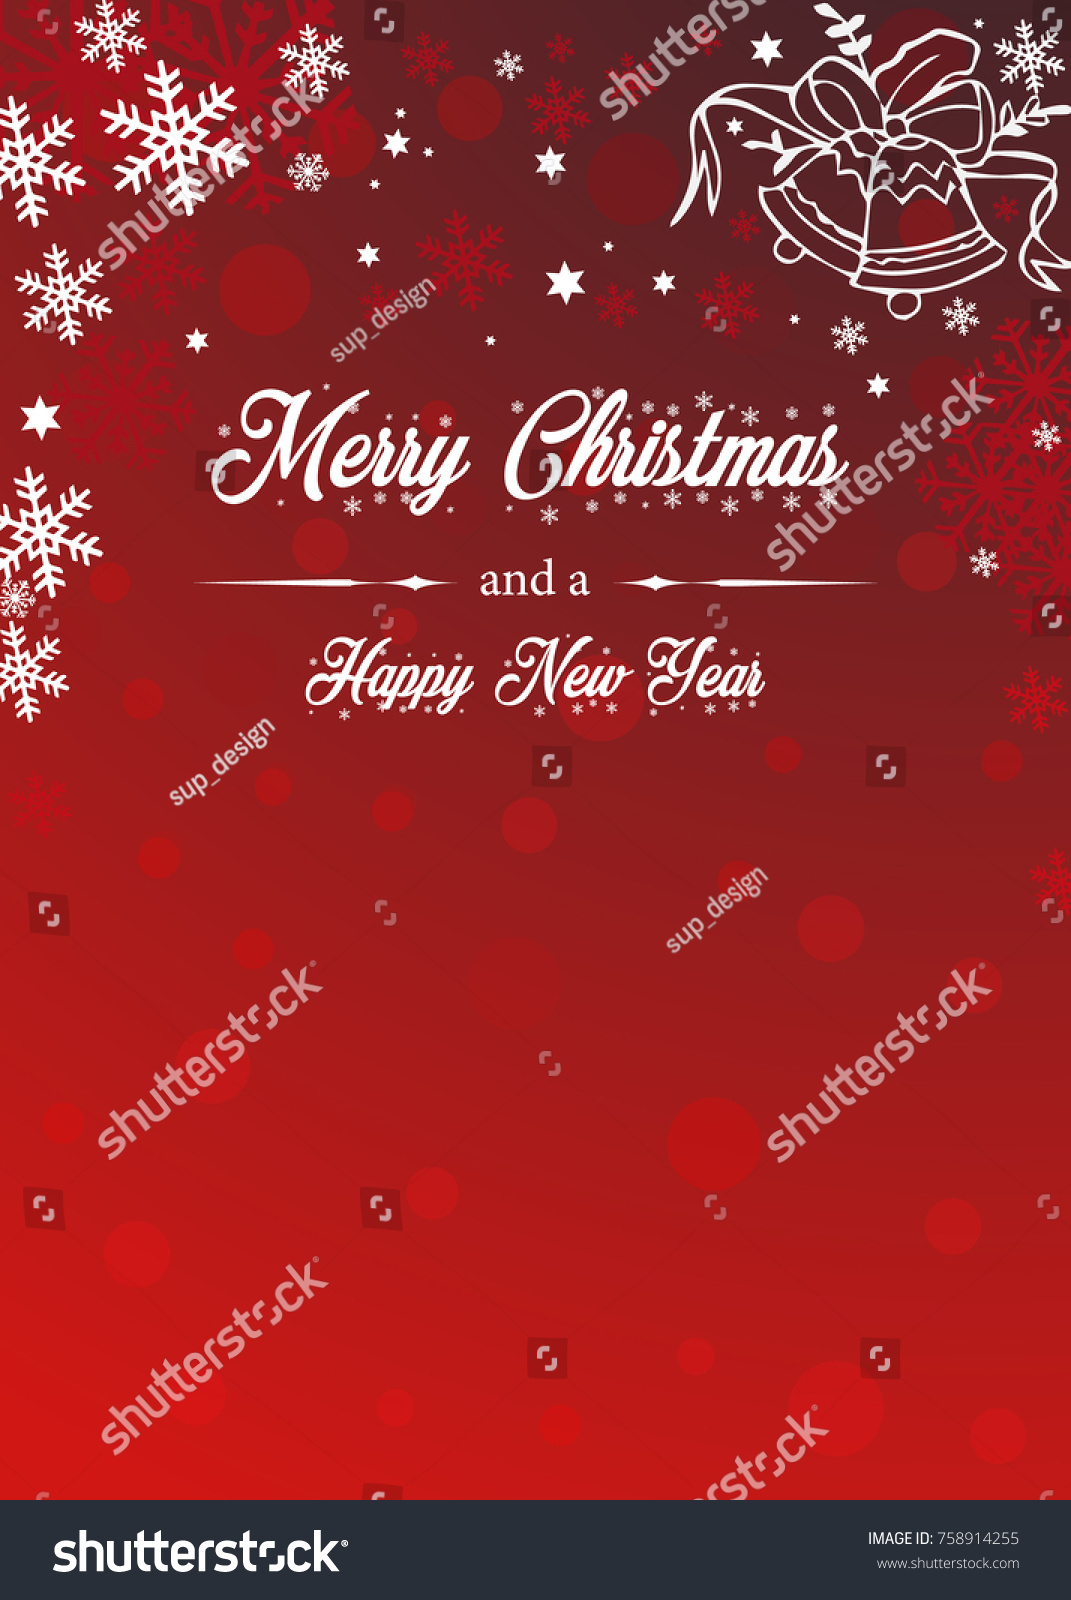 Merrry chistmas new year design cards stock vector 758914255 design for cards greetingsbackground etc kristyandbryce Gallery